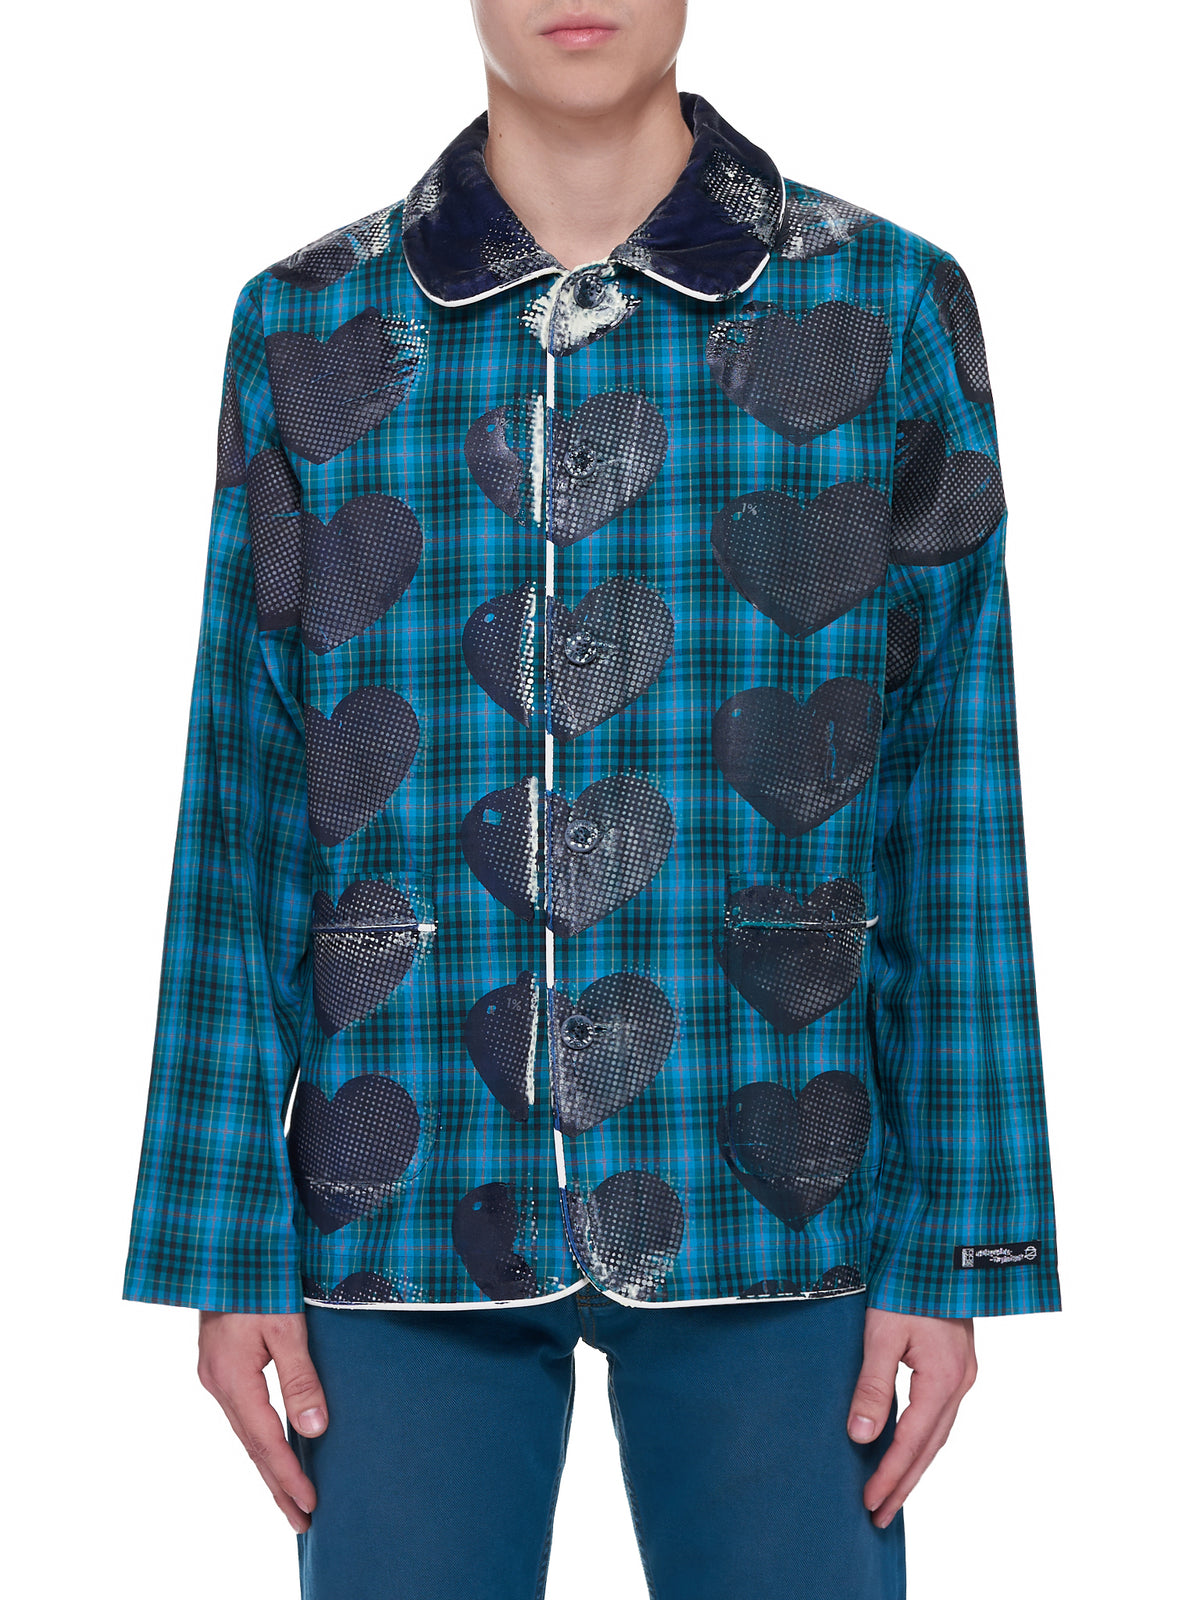 Parlor of Hearts Shirt (NN15-ST09-GREEN)